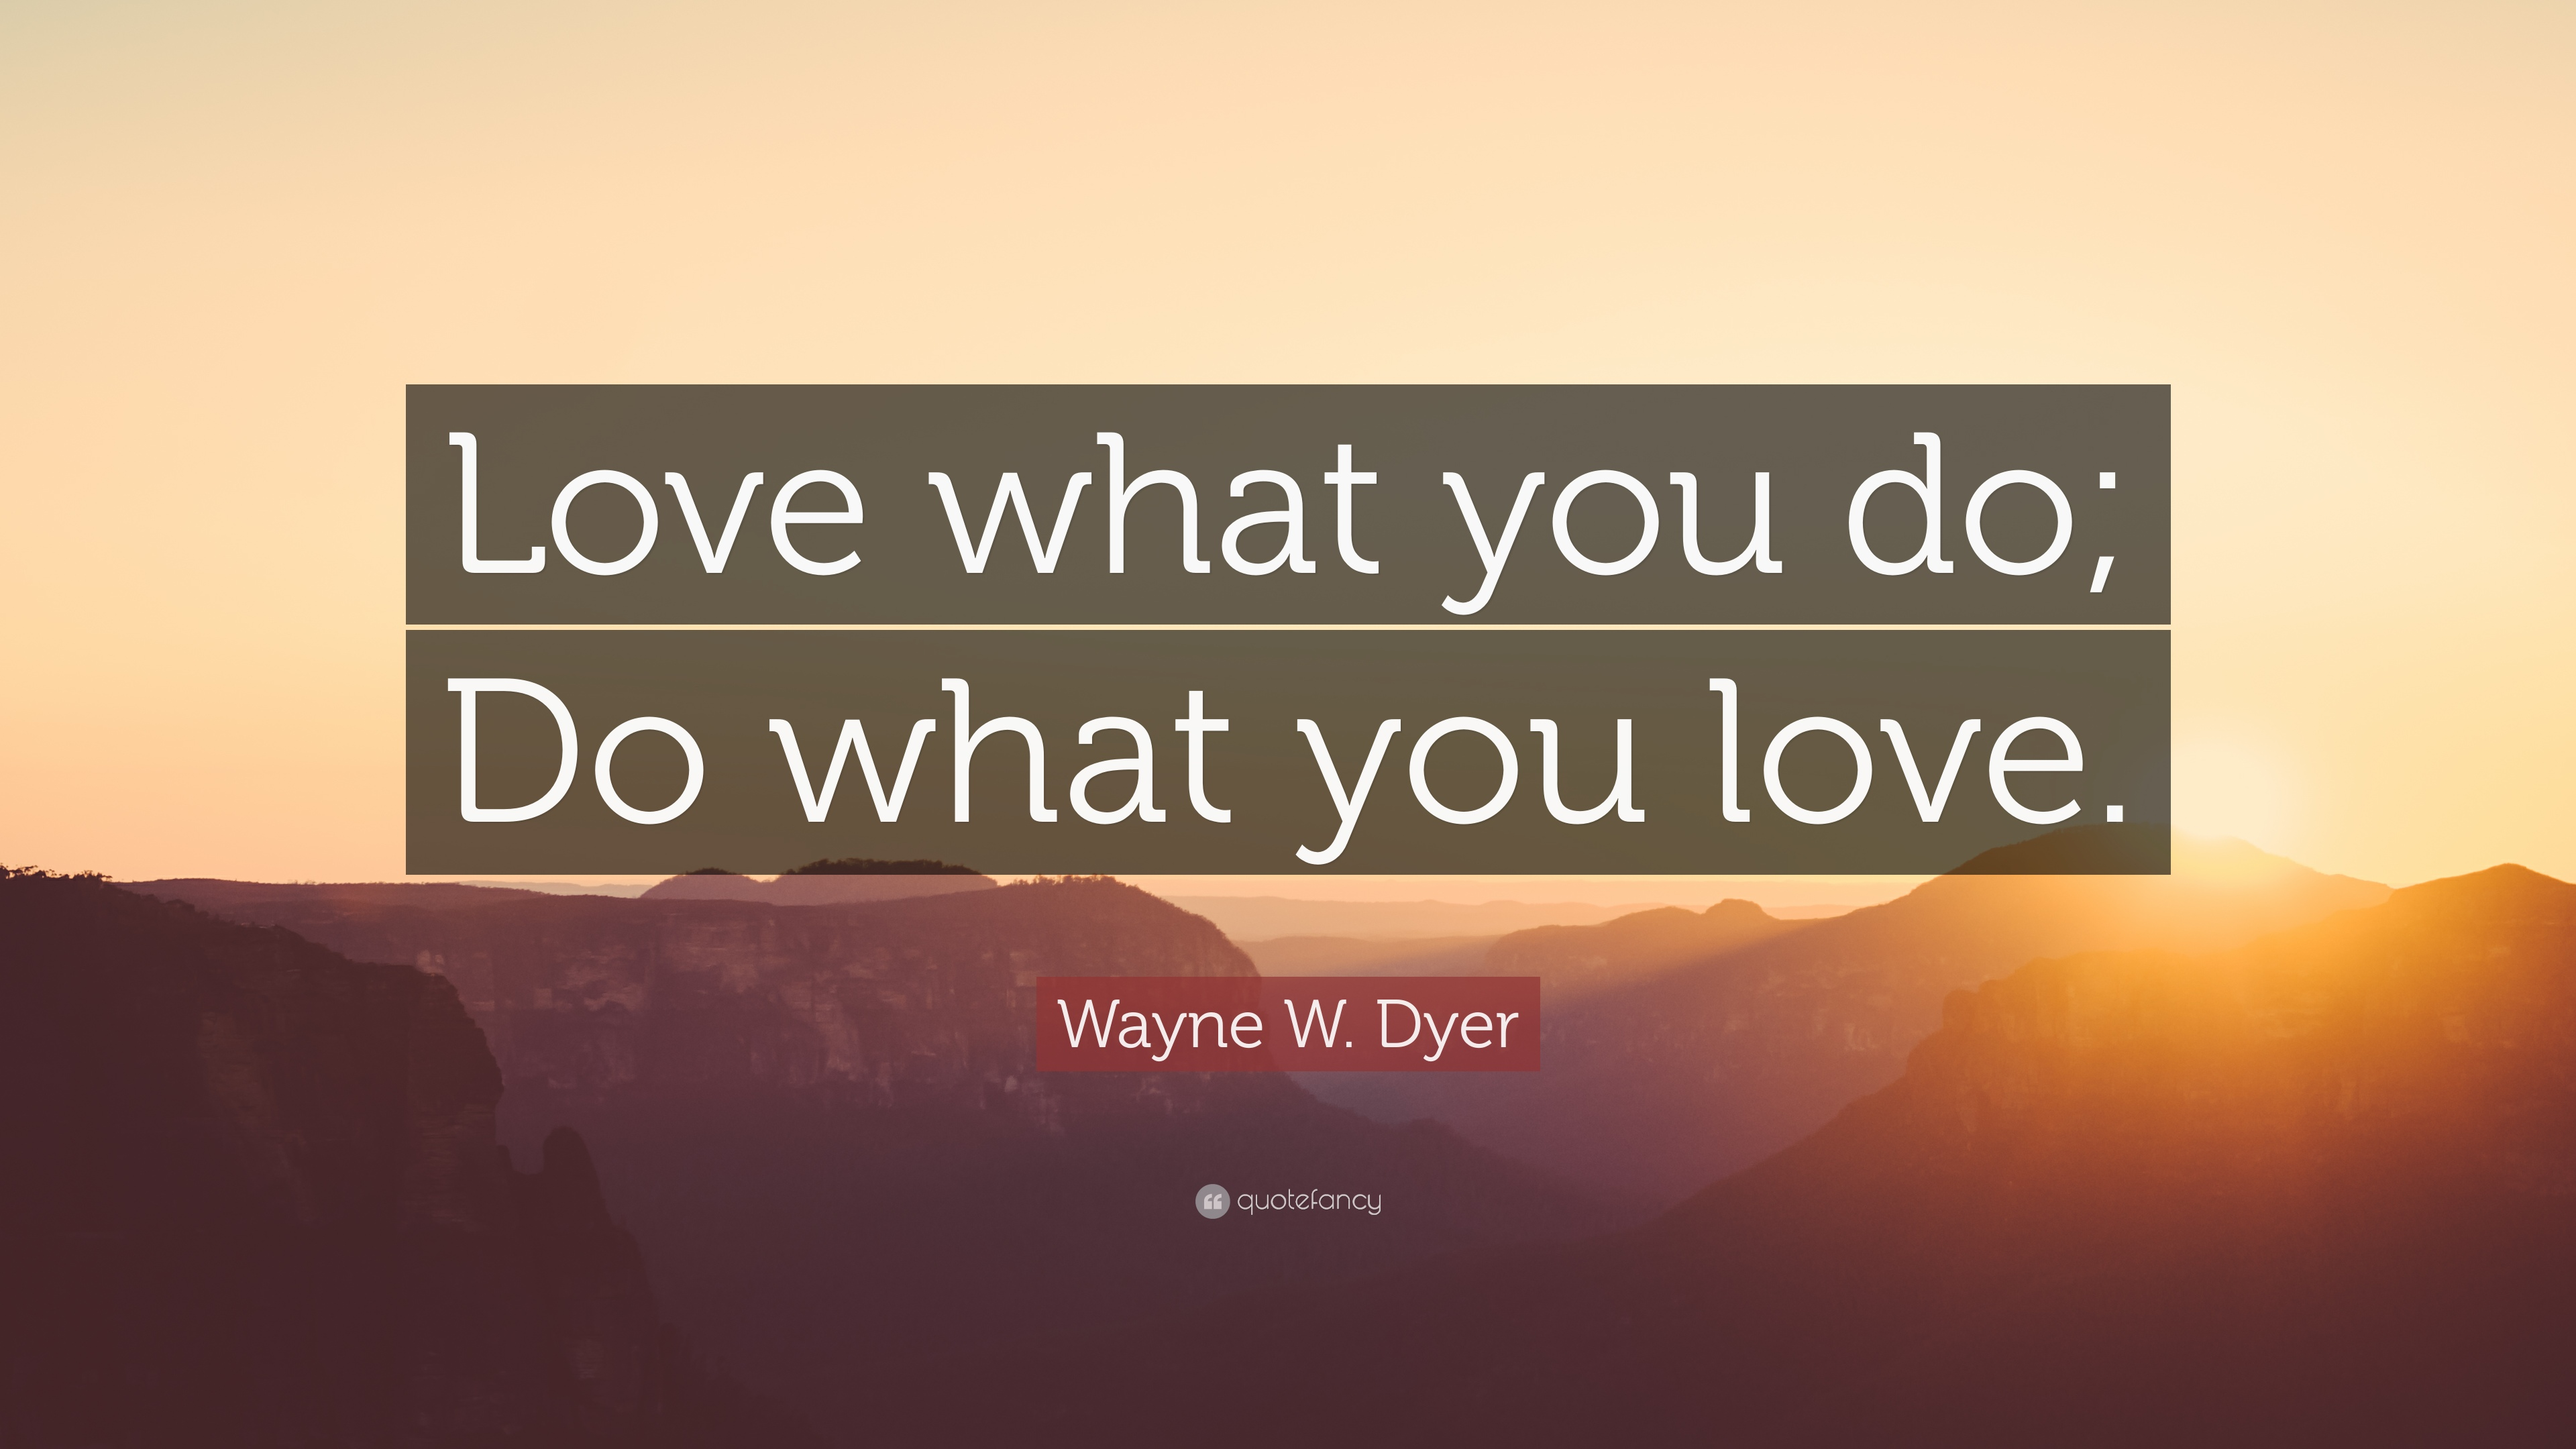 Do What You Love Quotes : Wayne W. Dyer Quote: ?Love what you do; Do what you love.? (17 ...